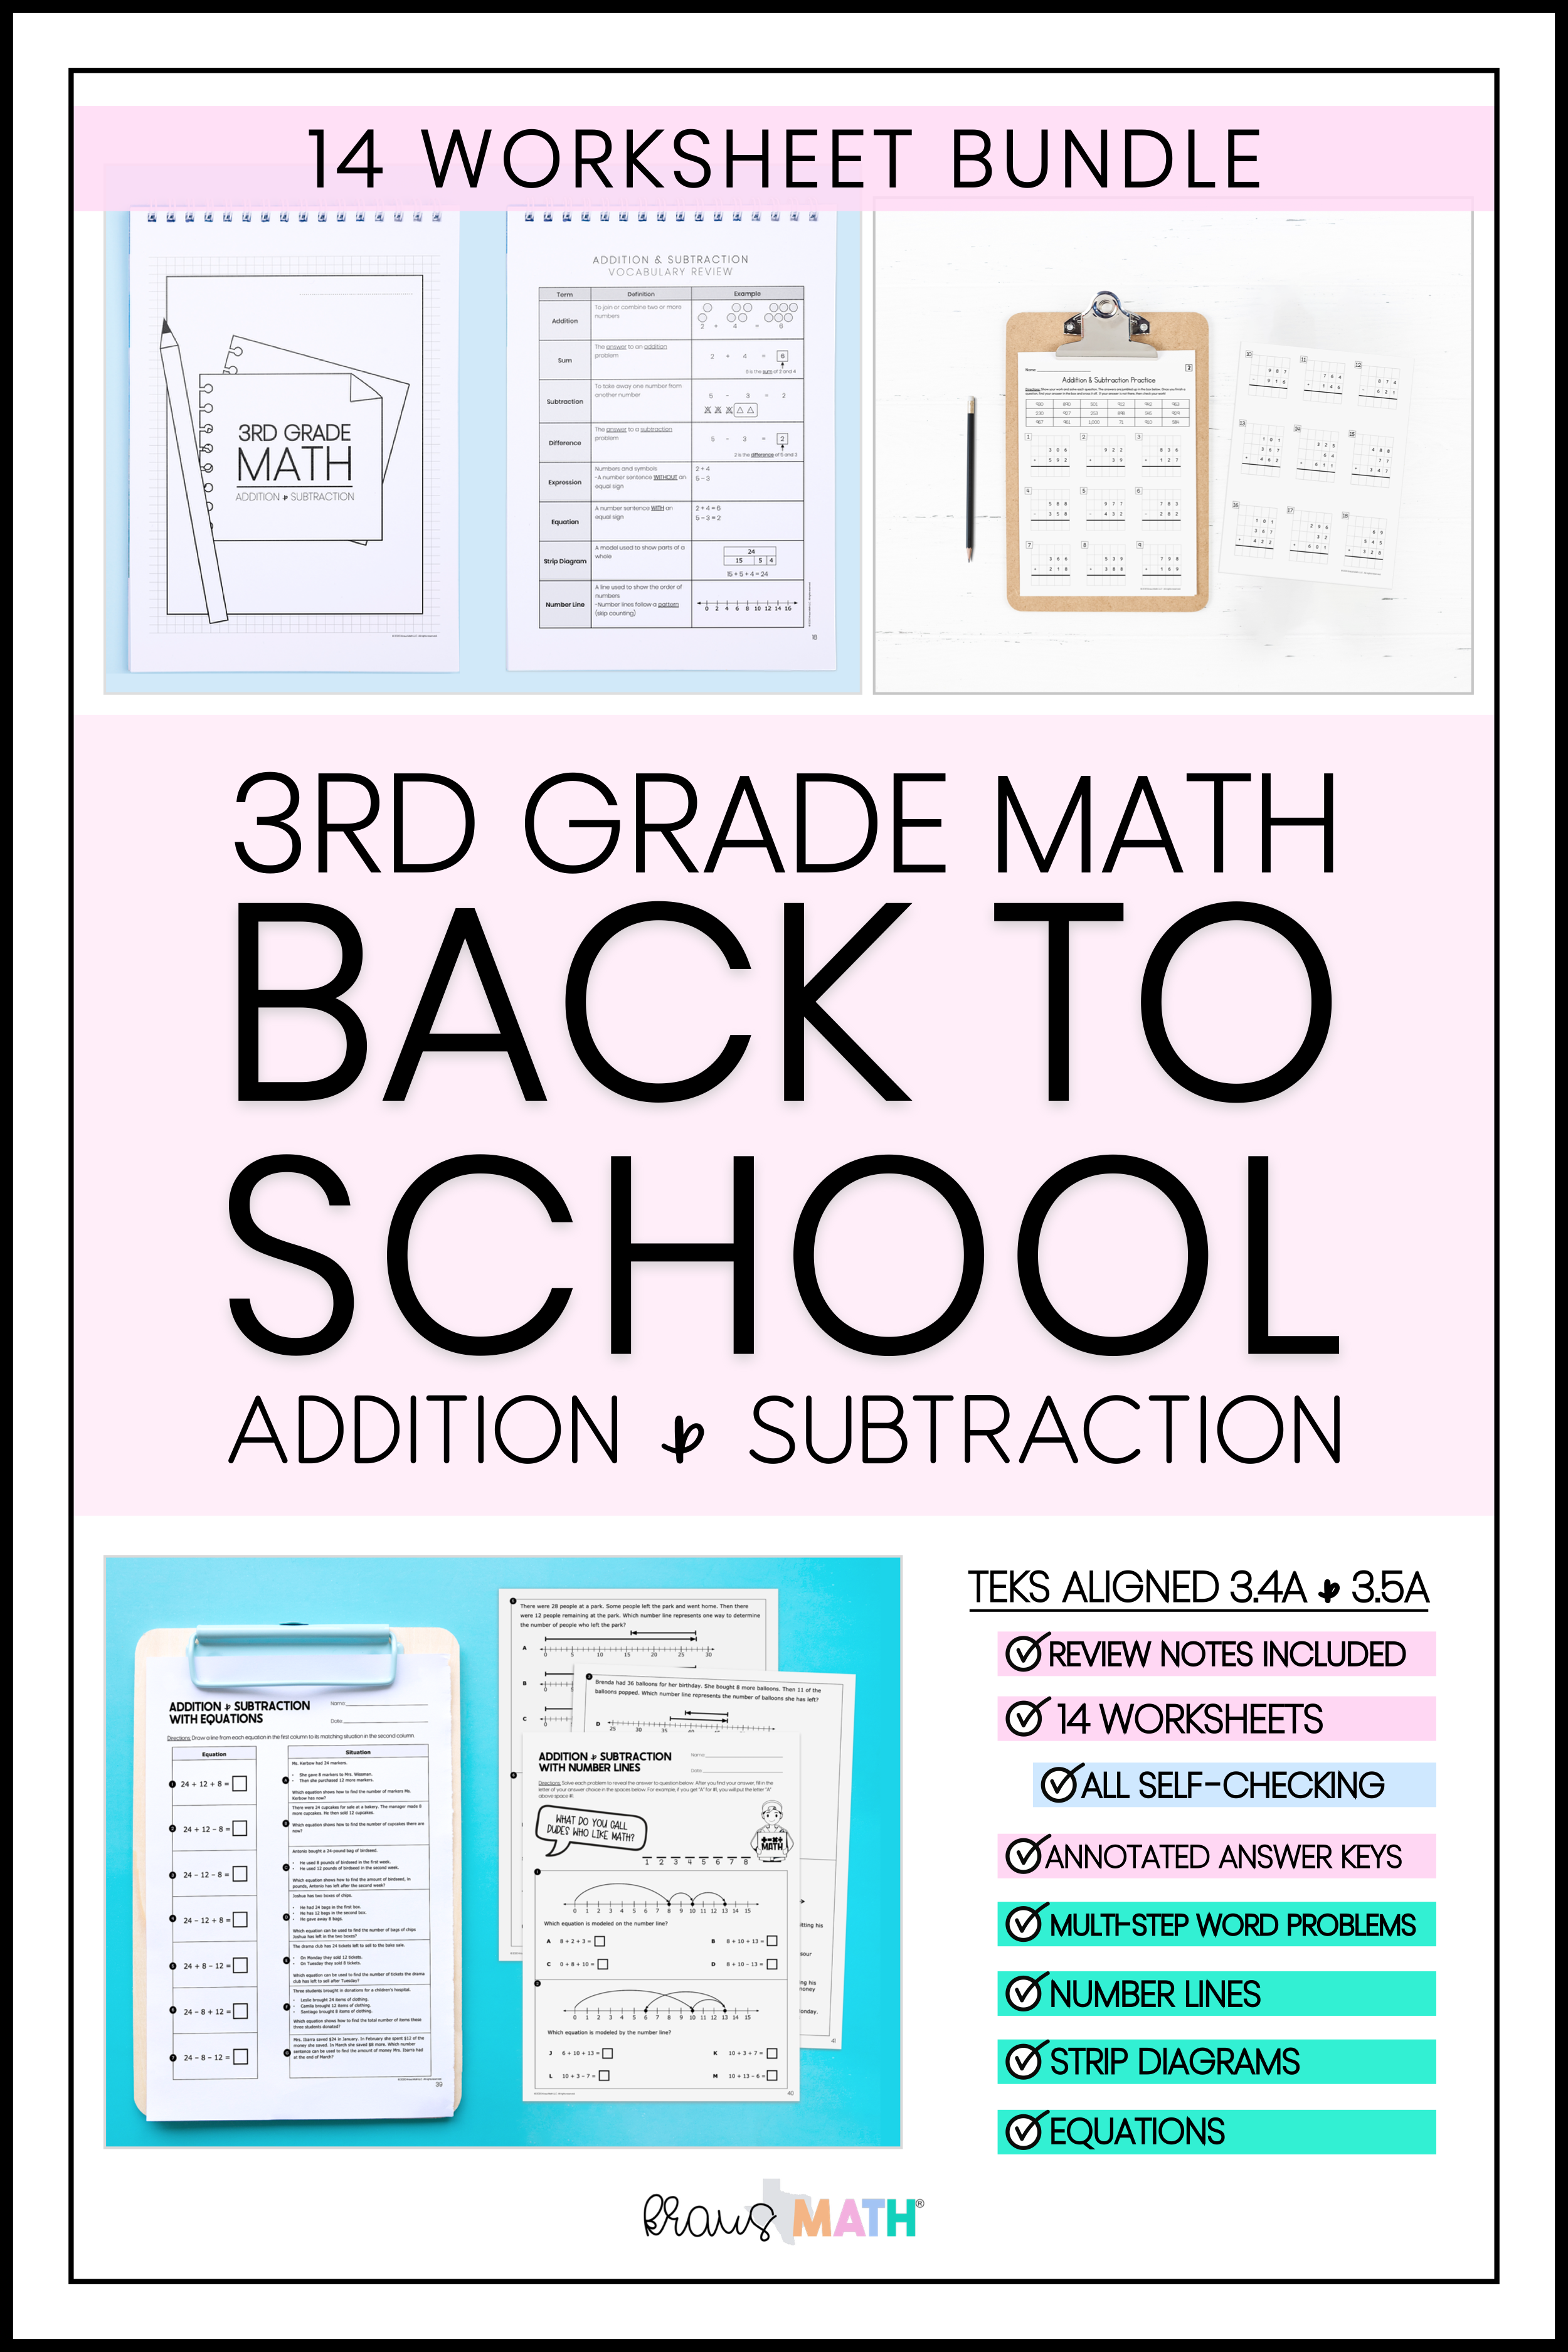 3rd Grade Math Packet 2 Addition Subtraction Kraus Math 3rd Grade Math Math Packets Math Facts [ 3750 x 2500 Pixel ]